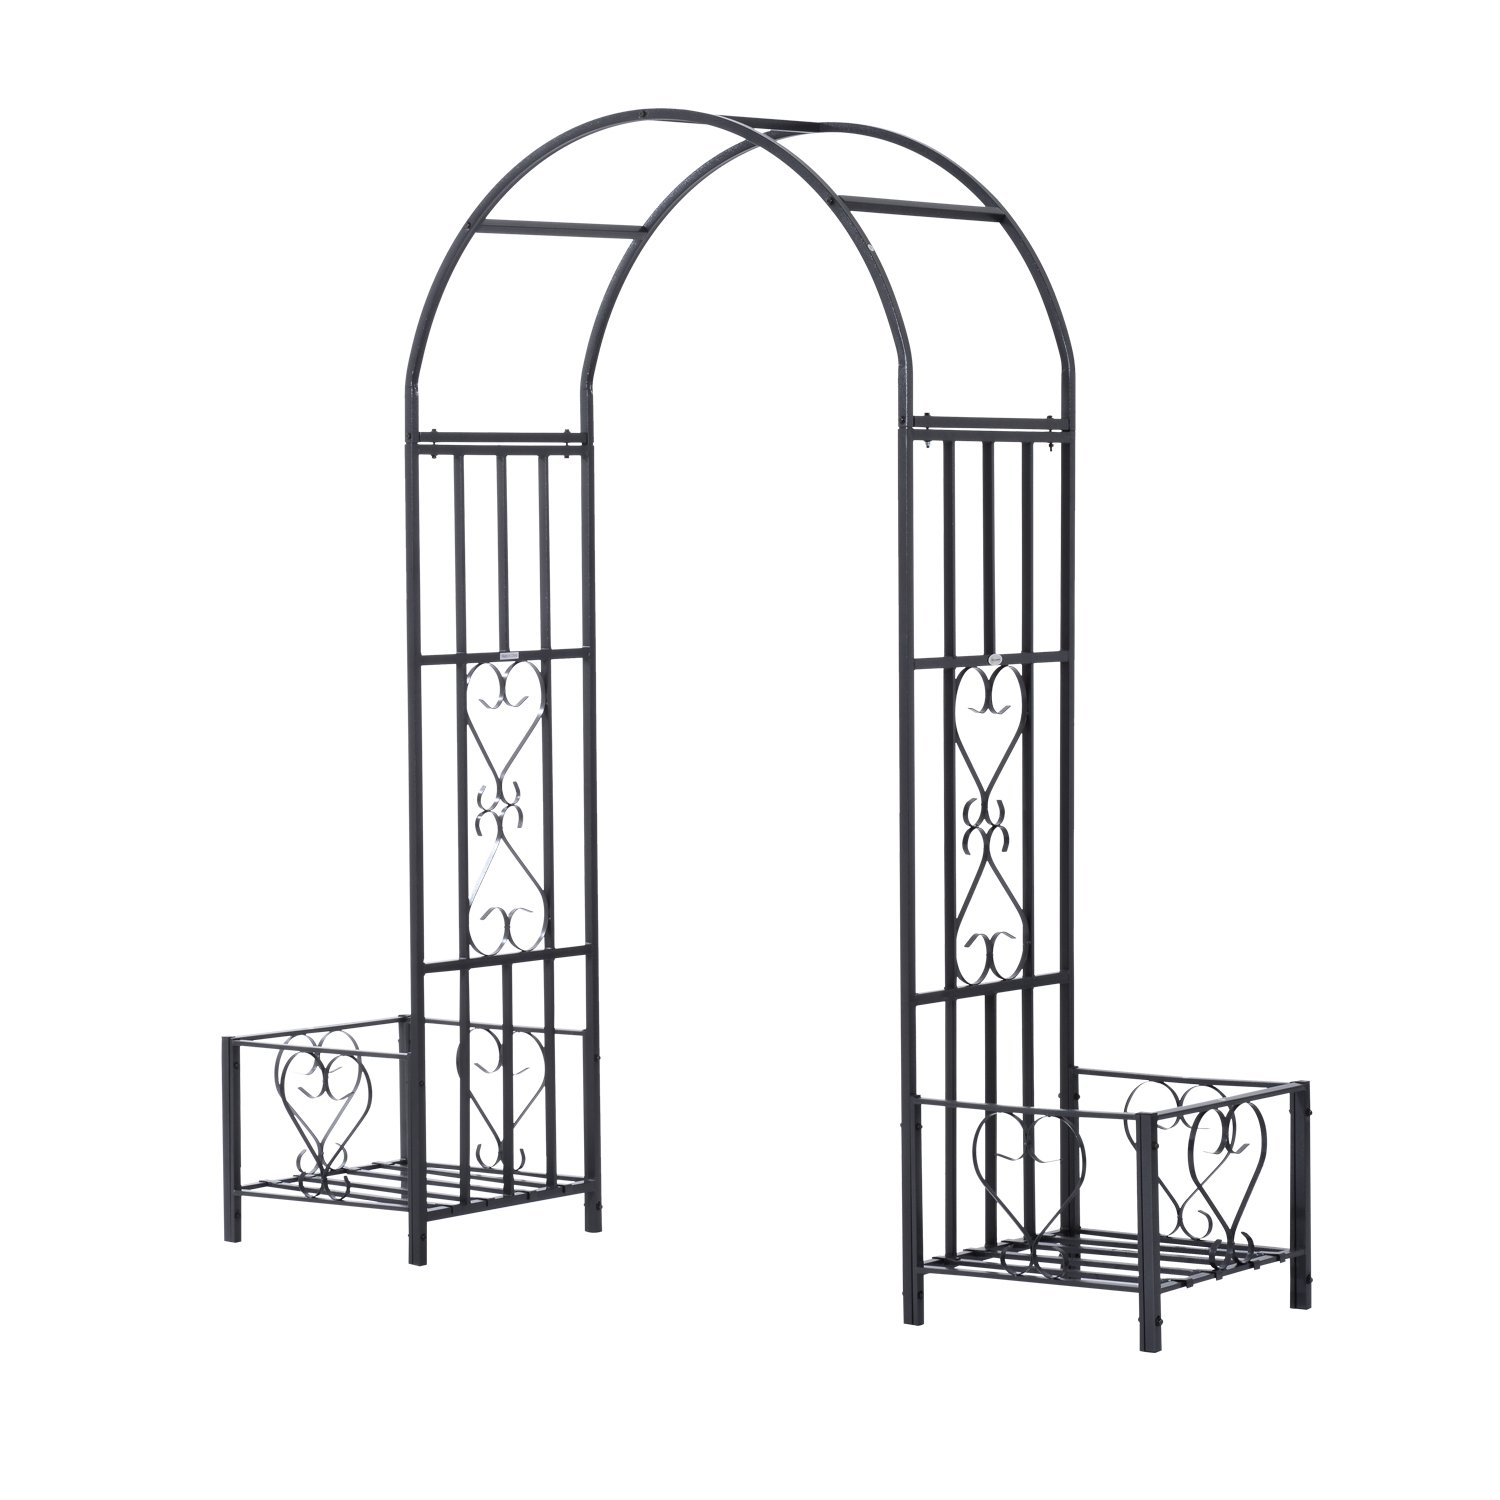 Outsunny Decorative Metal Backyard Garden Arch (Planters)